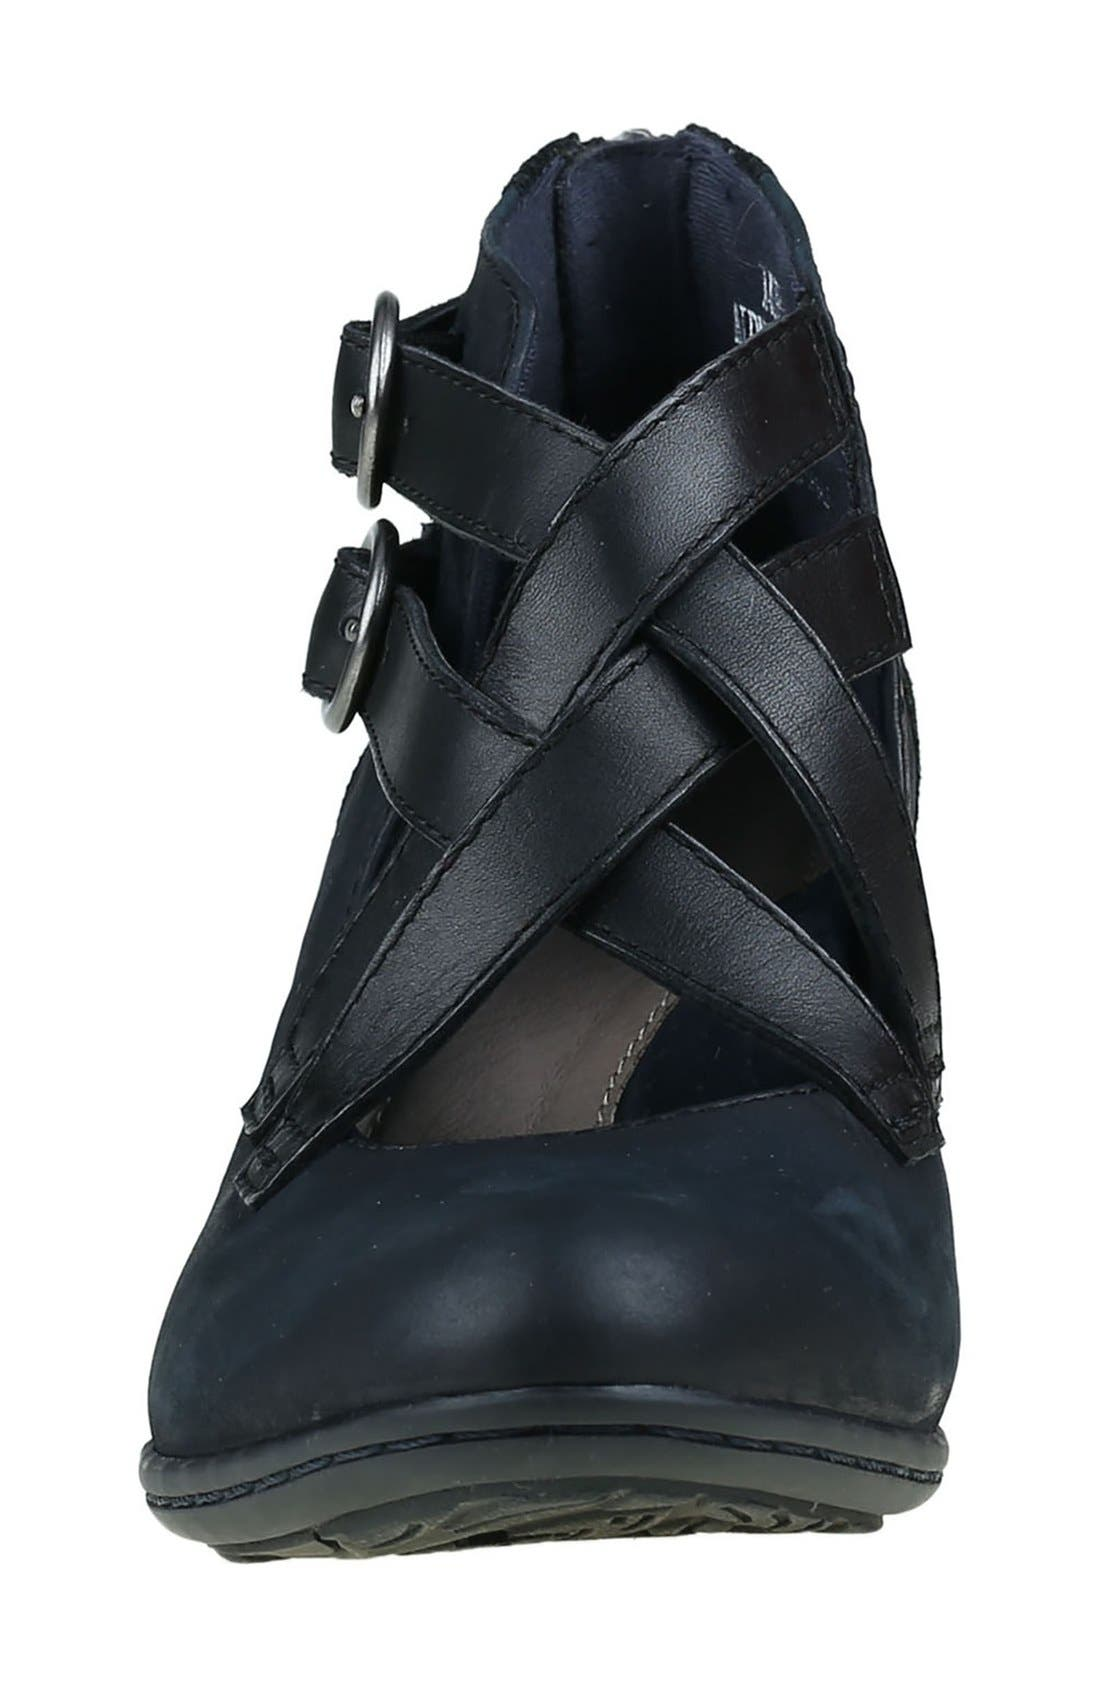 'Amber' Buckle Bootie,                             Alternate thumbnail 3, color,                             Navy Nubuck Leather